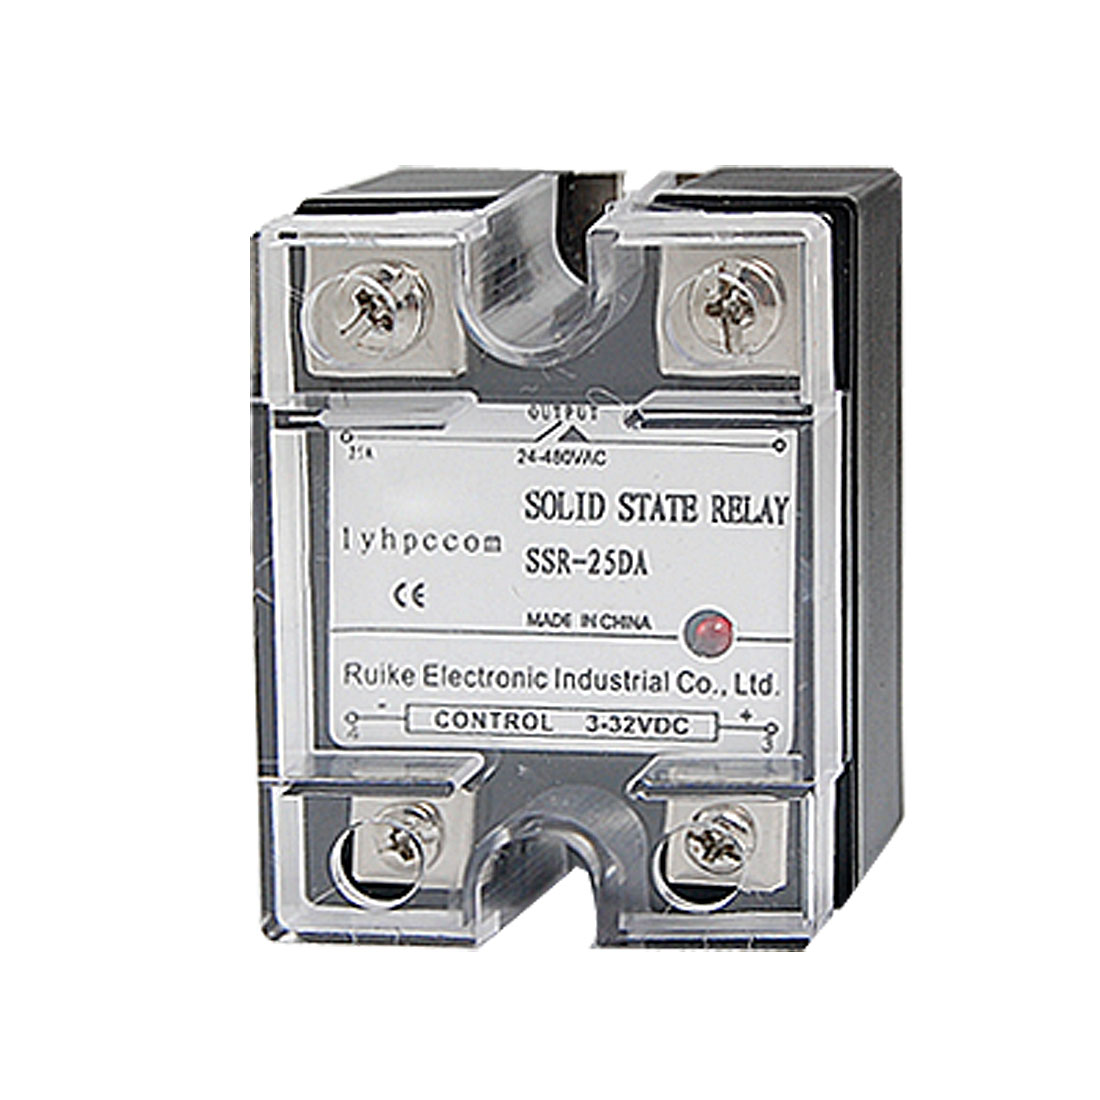 DC to AC 25A Solid State Relay SSR 25A 3-32V DC 24-480V AC